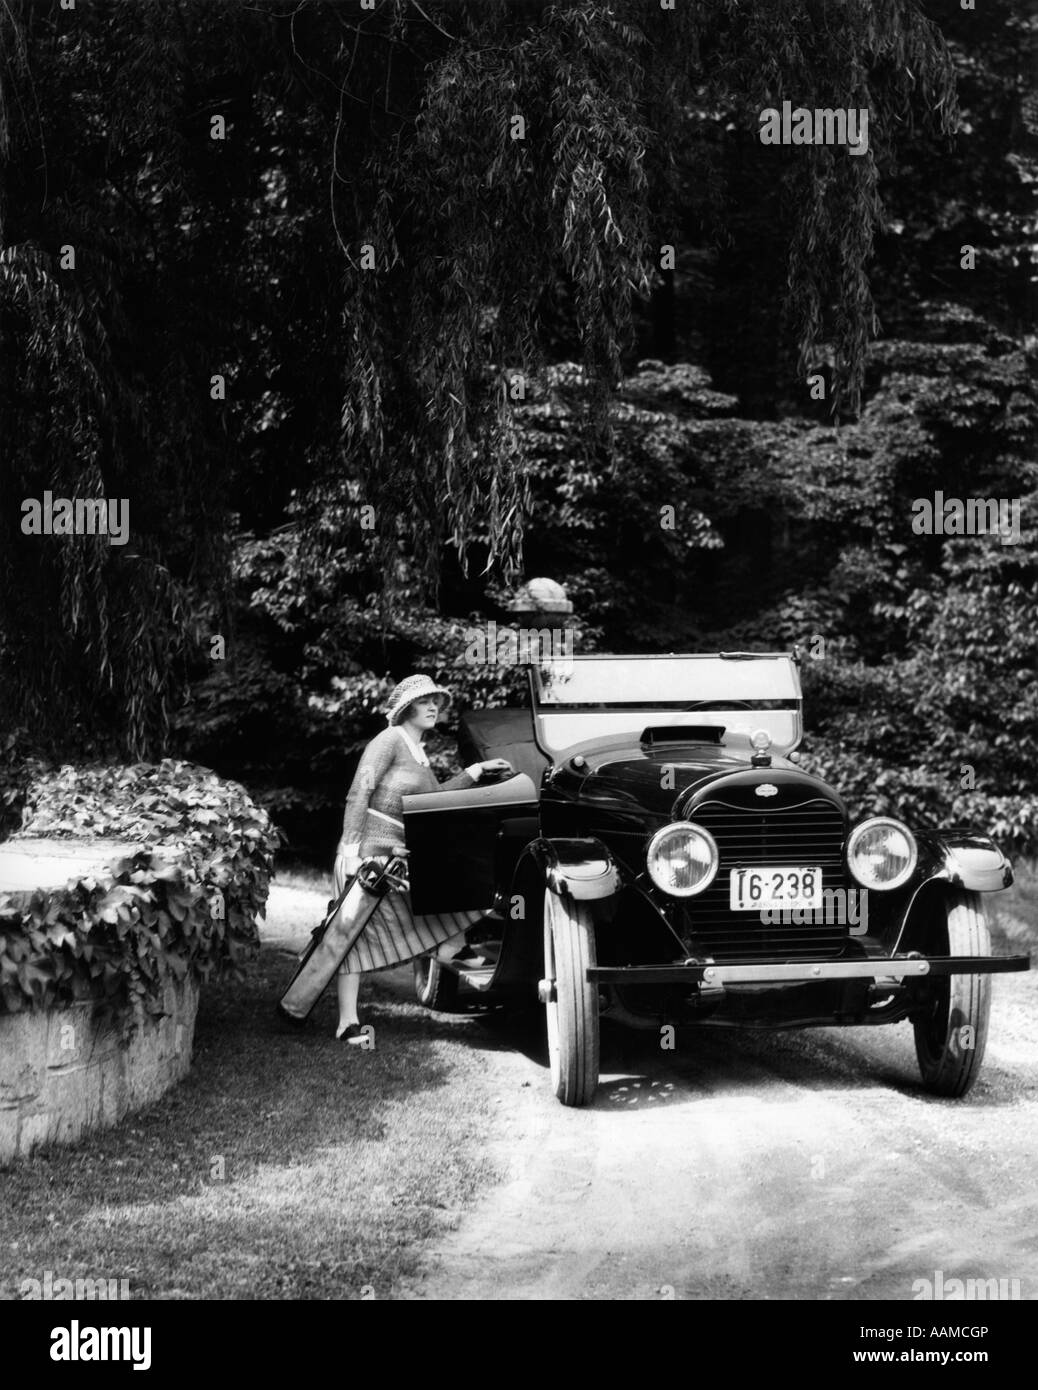 1920s WOMAN GETTING INTO PASSENGER SIDE OF CAR CARRYING GOLF BAG IN WOODED AREA - Stock Image